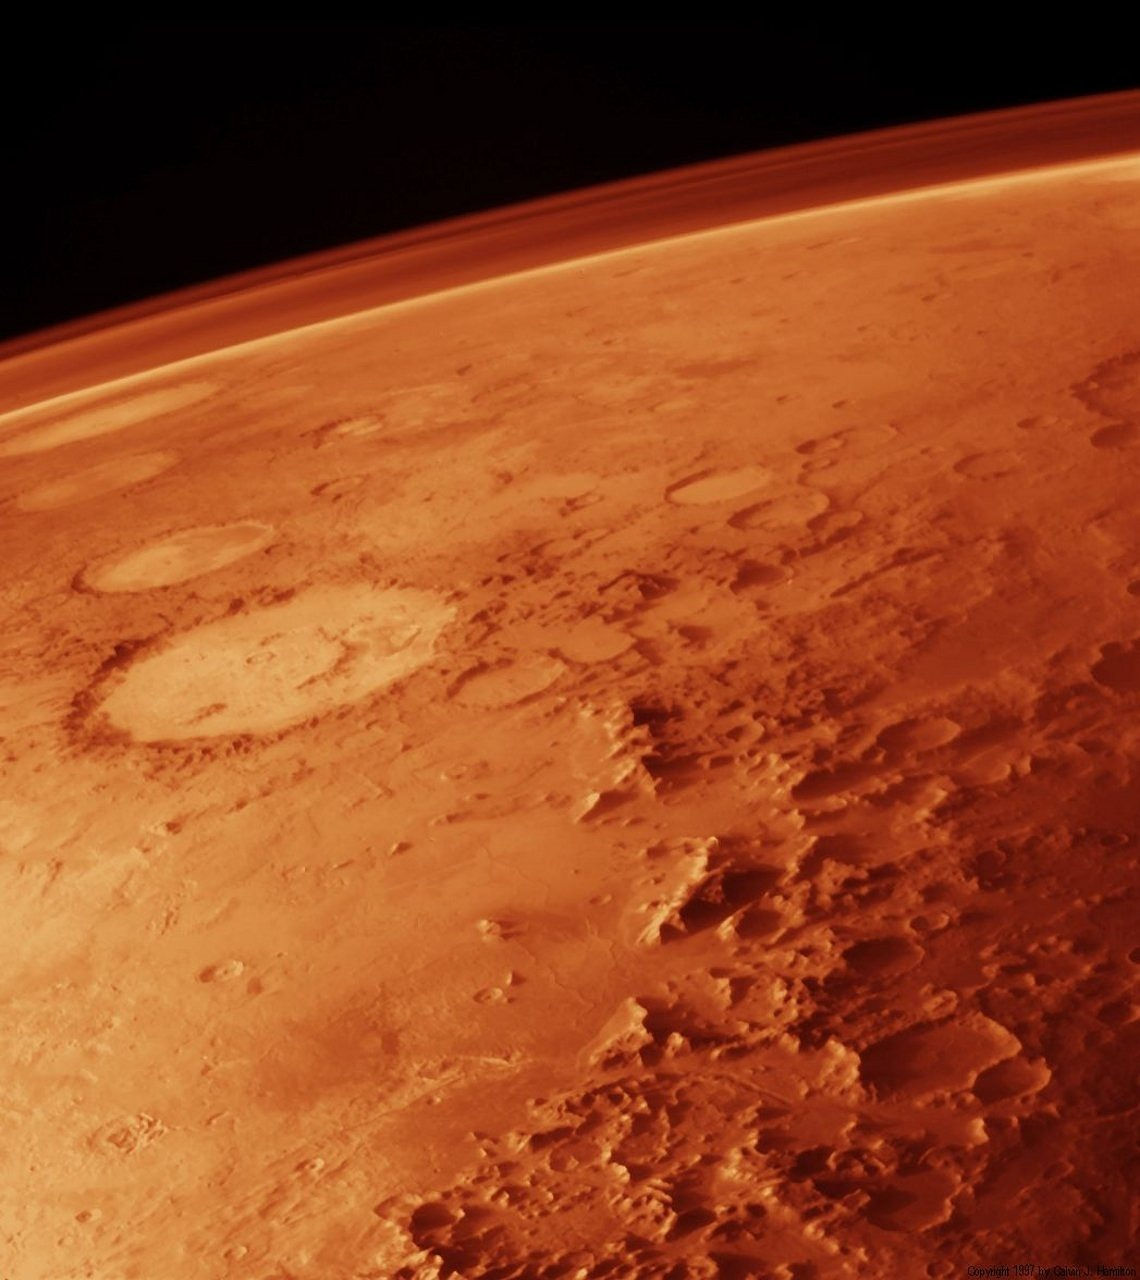 Ancient 'Megafloods' Swept Across the Surface of Mars 4 Billion Years Ago, Find Scientists